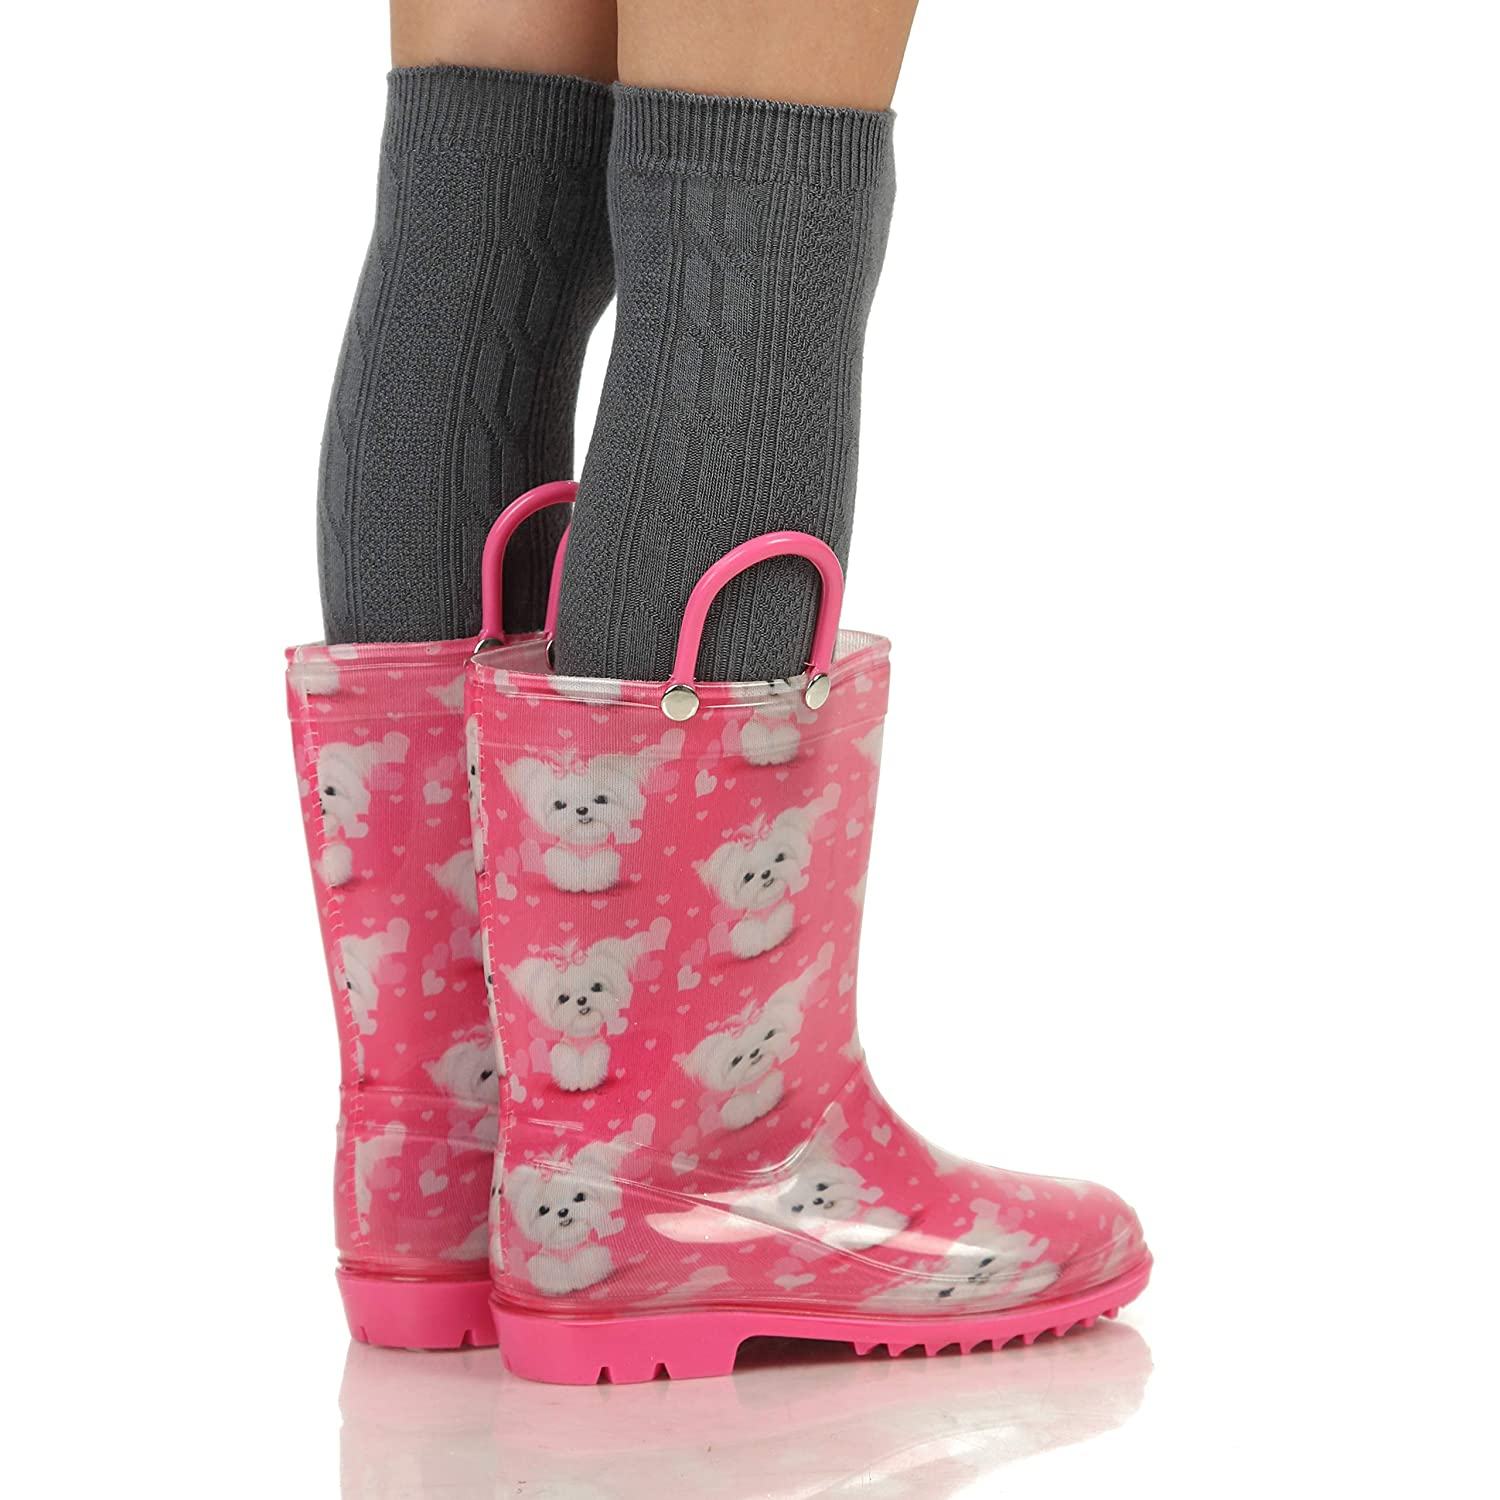 Waterproof Toddler Little//Big Kids Classic Wellies Silky Toes Girls Boys Printed Rain Boots for Kids